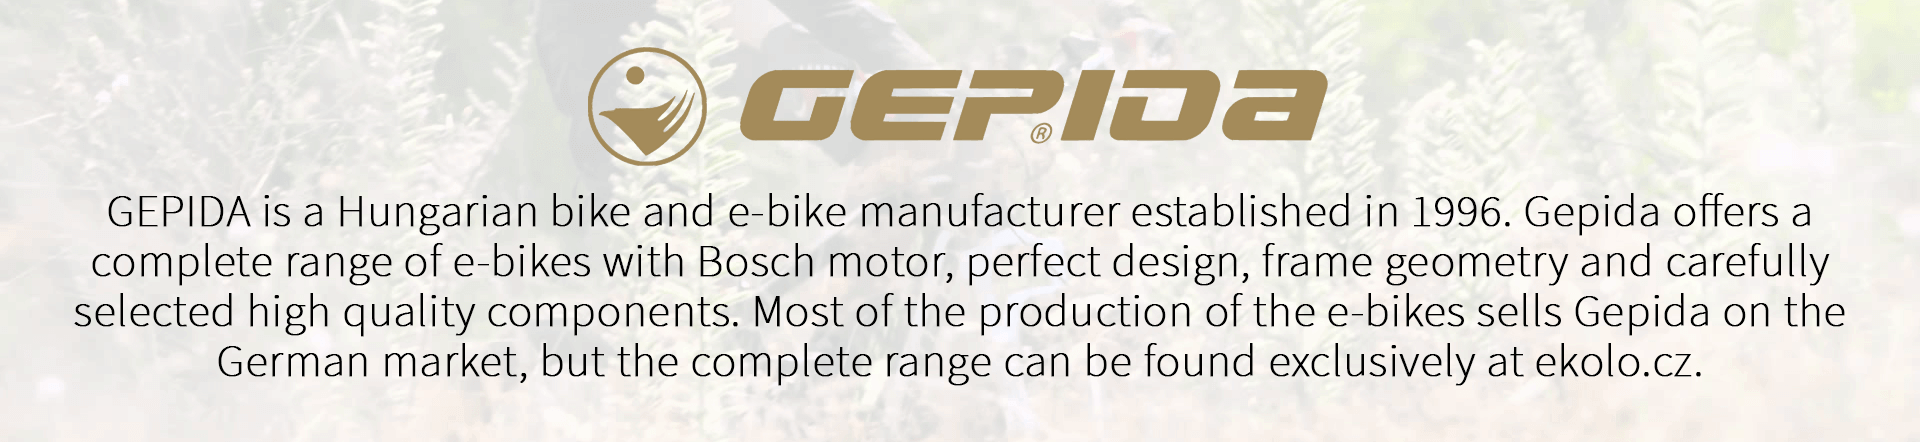 GEPIDA is a Hungarian bike and e-bike manufacturer established in 1996. Gepida offers a complete range of e-bikes with Bosch motor, perfect design, frame geometry and carefully selected high quality components. Most of the production of the e-bikes sells Gepida on the German market, but the complete range can be found exclusively at ekolo.cz.